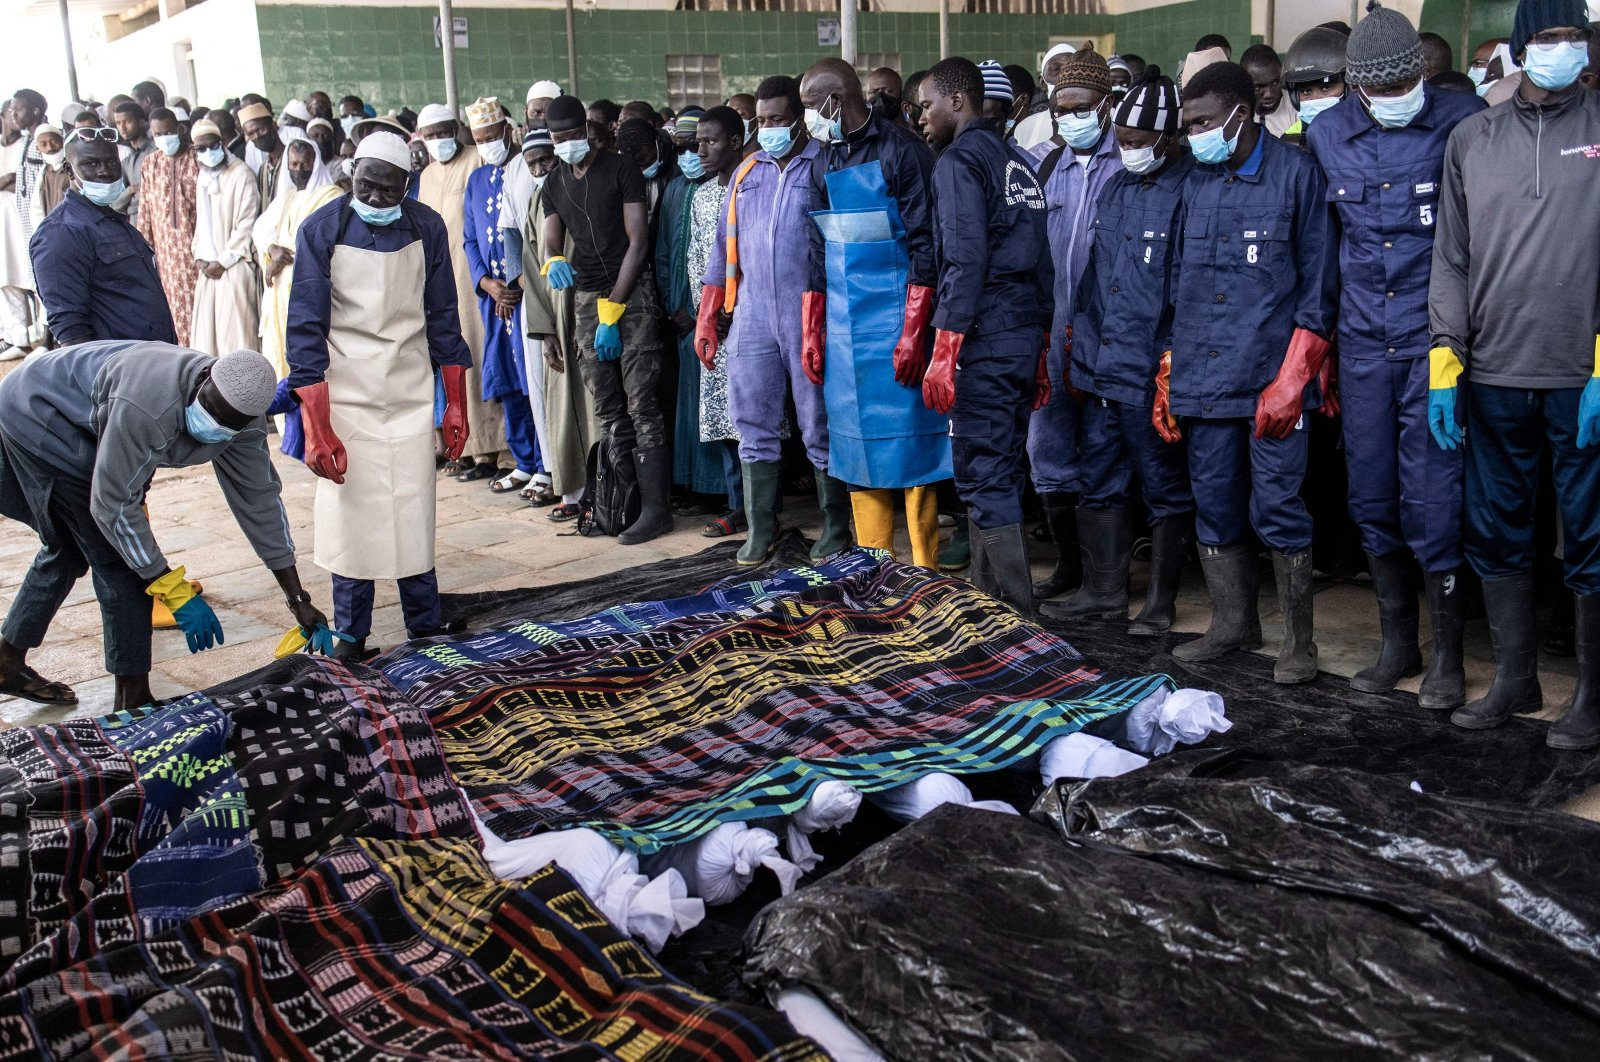 Volunteers of the Association For Solidarity and Perfection (JRWI) cover the 28 unidentified corpses which are laid out at a mosque ahead of a prayer in Dakar, Senegal, March 28, 2021. (AFP Photo)